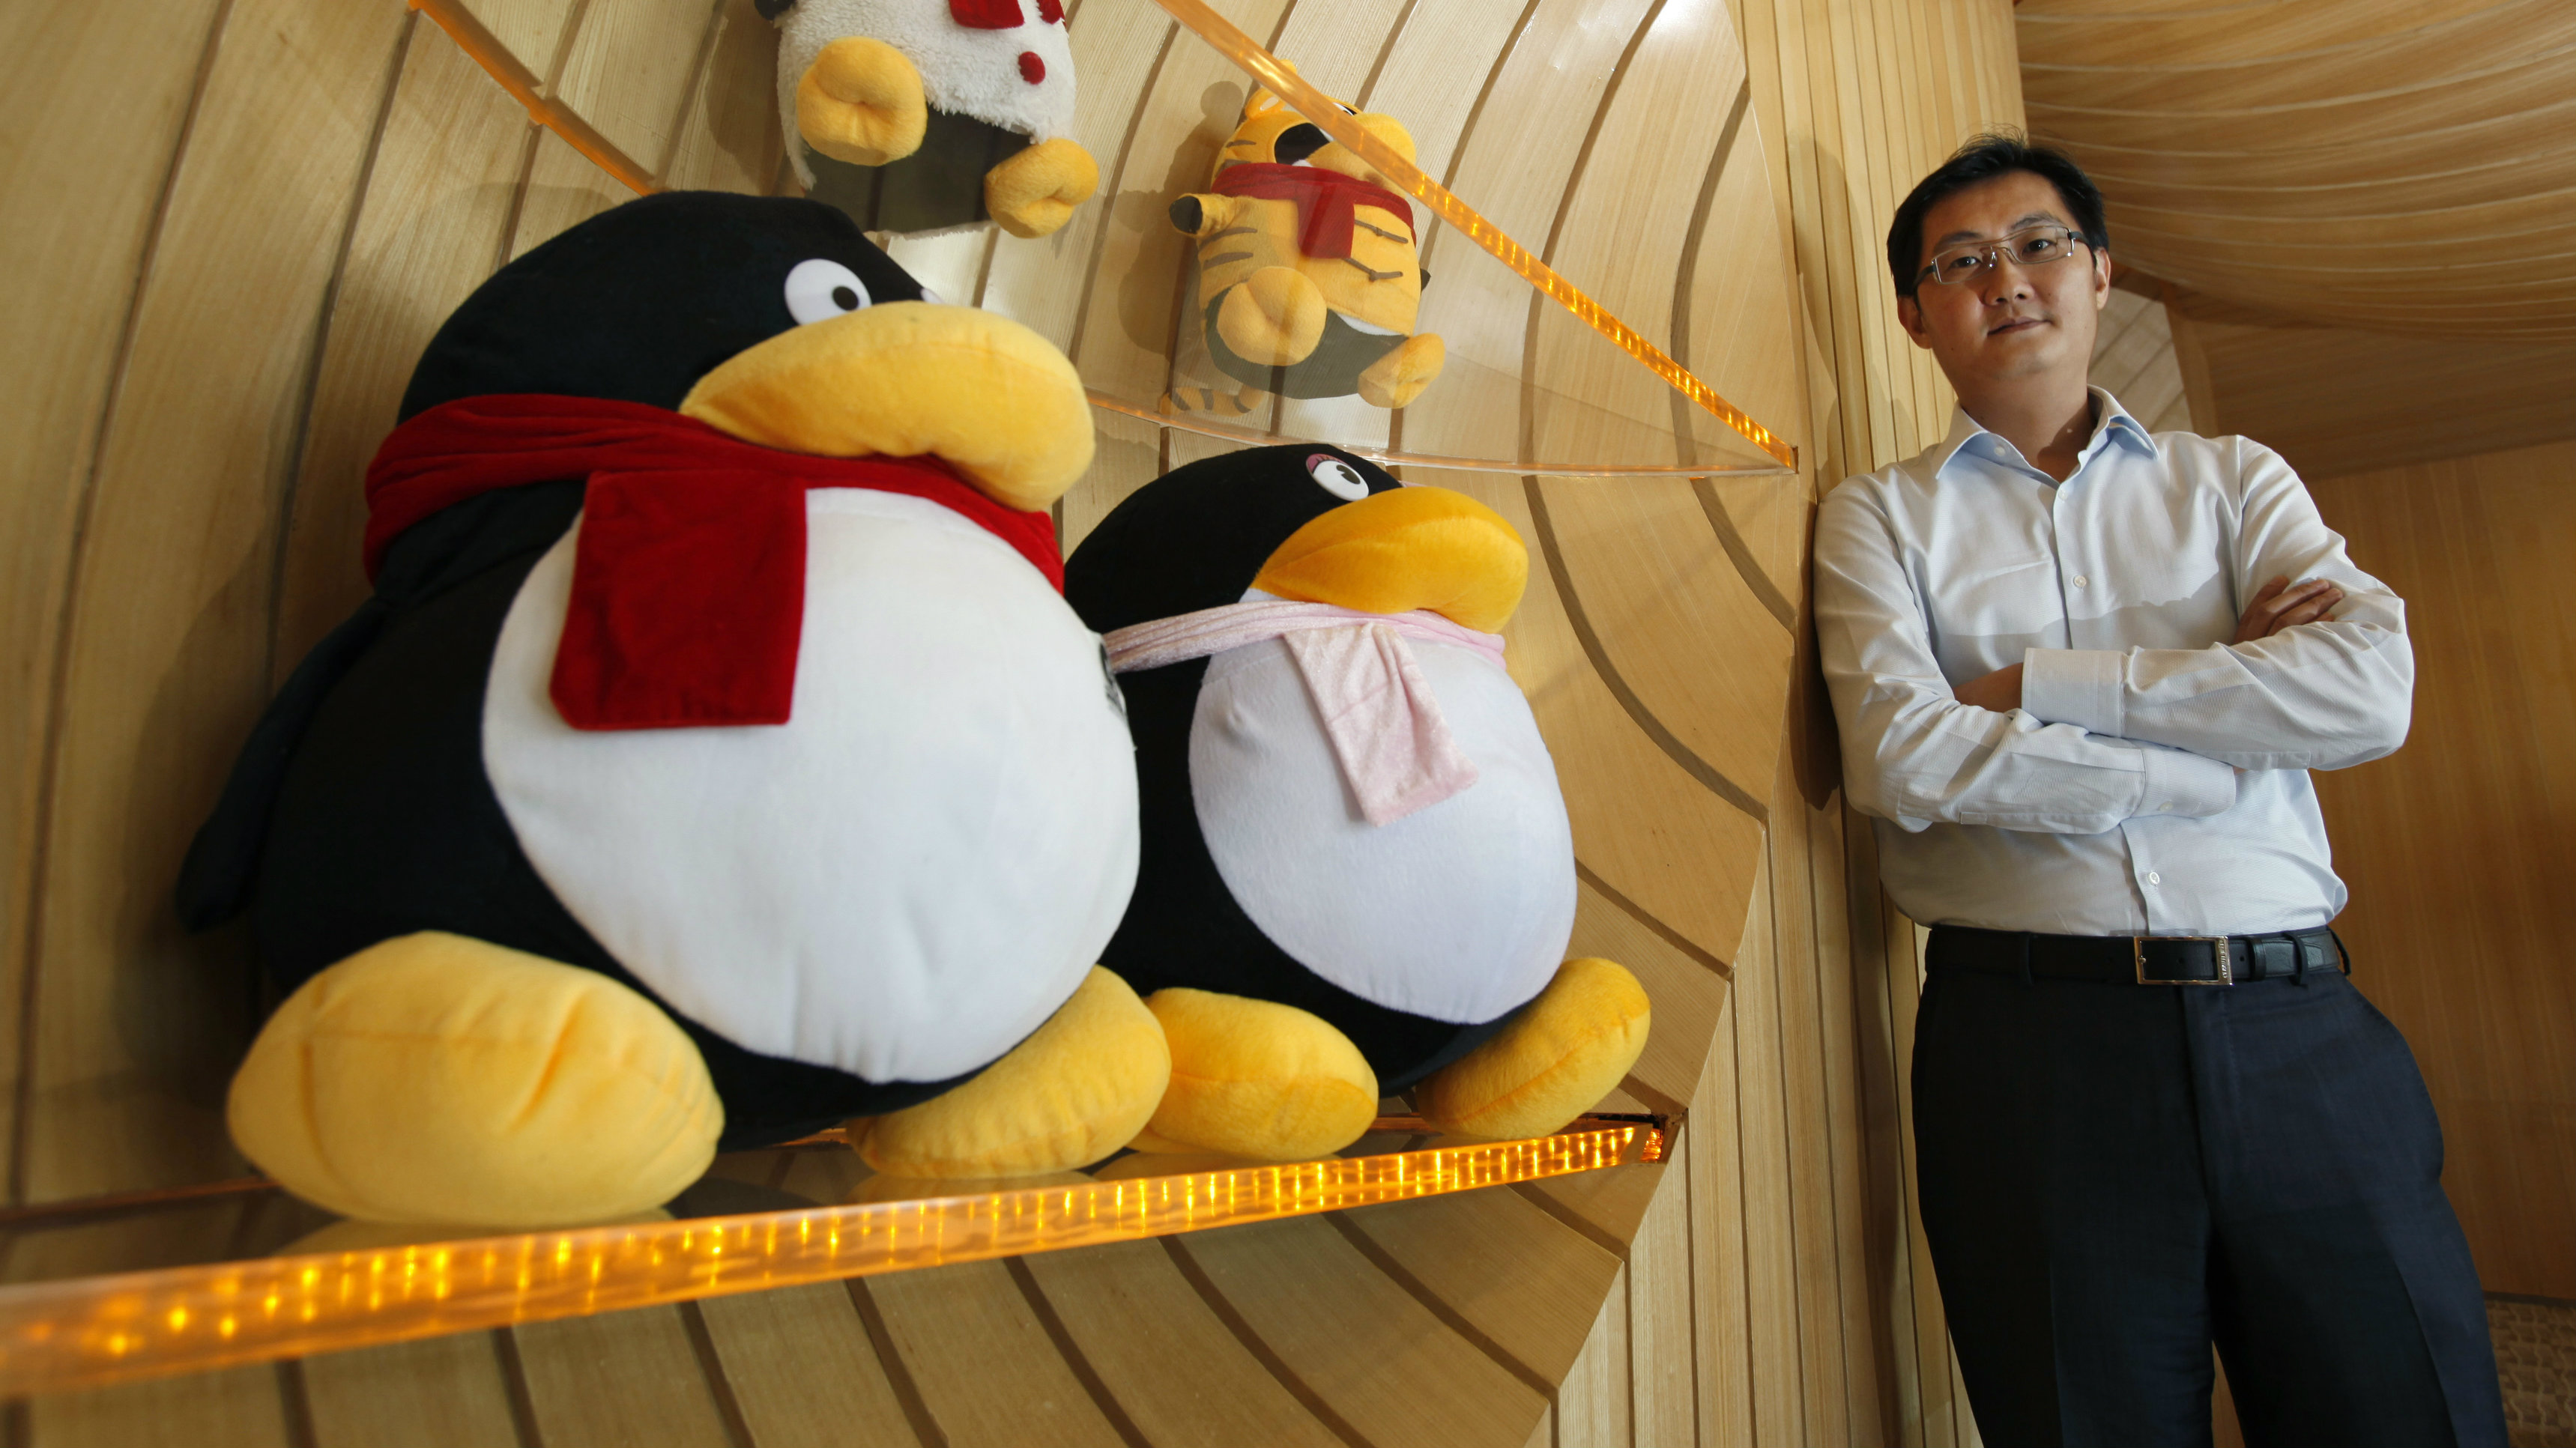 Tencent Chairman and CEO Pony Ma poses with mascots for QQ.com inside the company's headquarters in Nanshan Hi-Tech Industrial Park in the southern Chinese city of Shenzhen during an interview by Reuters June 9, 2011.